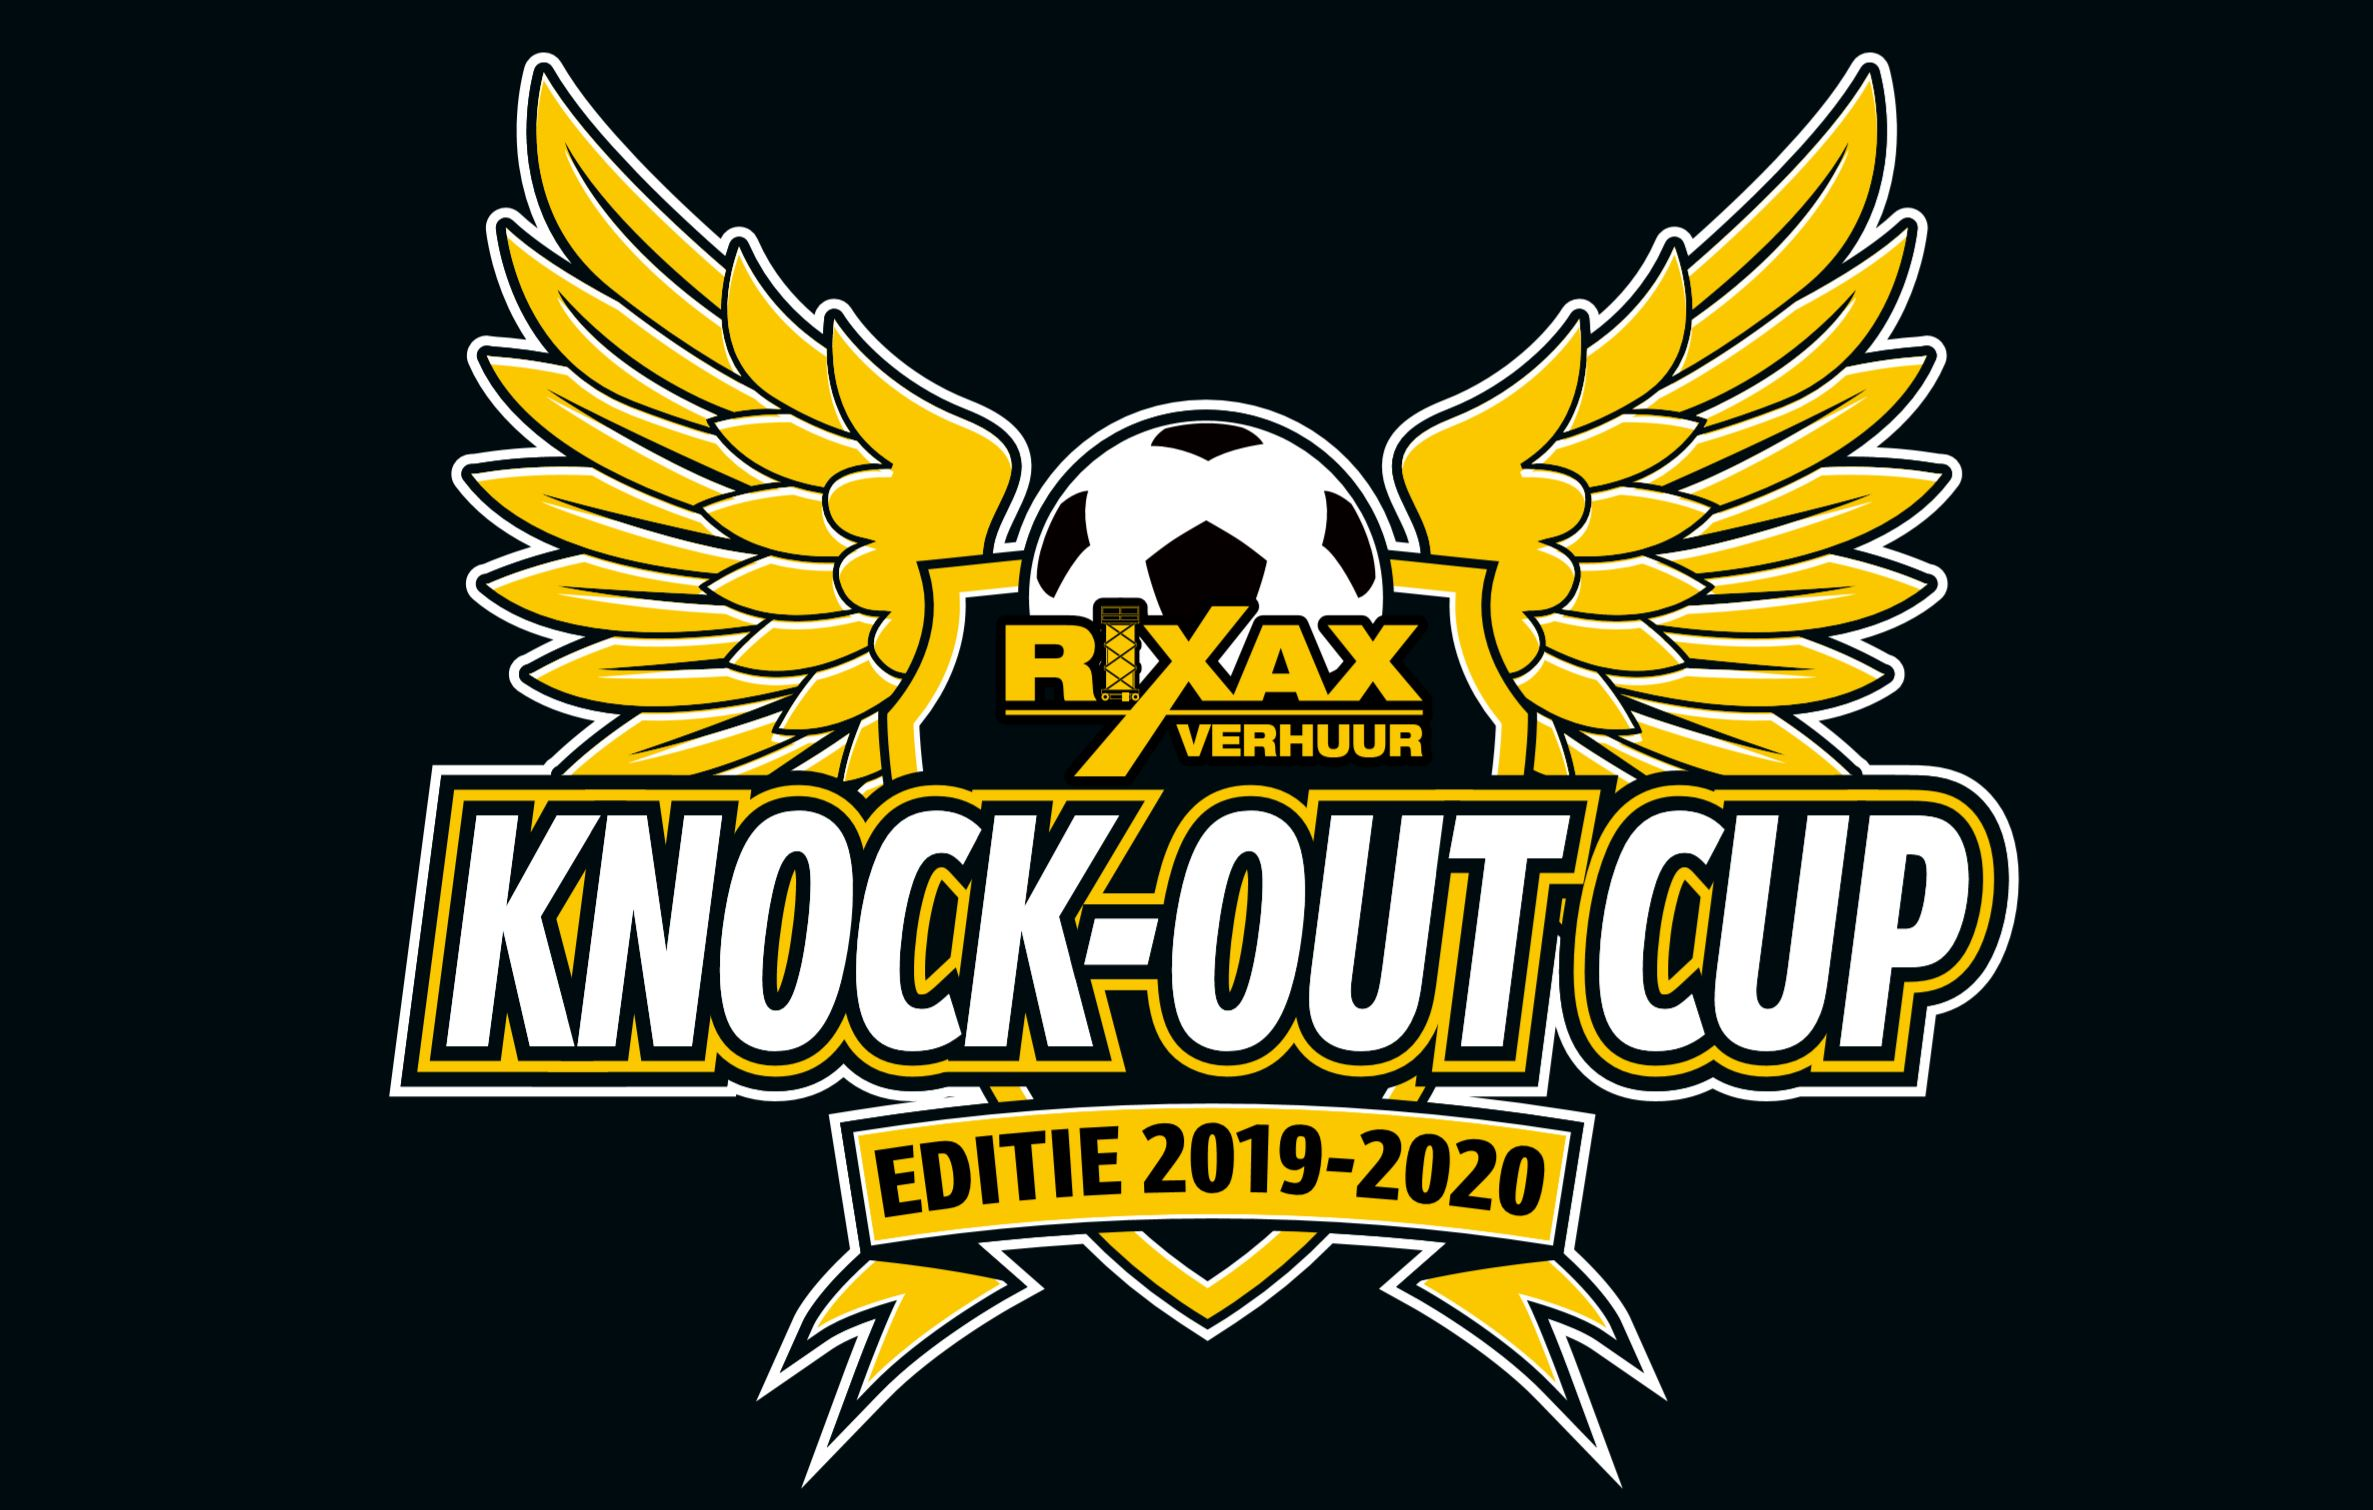 Voorbeschouwing achtste finale Rixax Knock-Out Cup